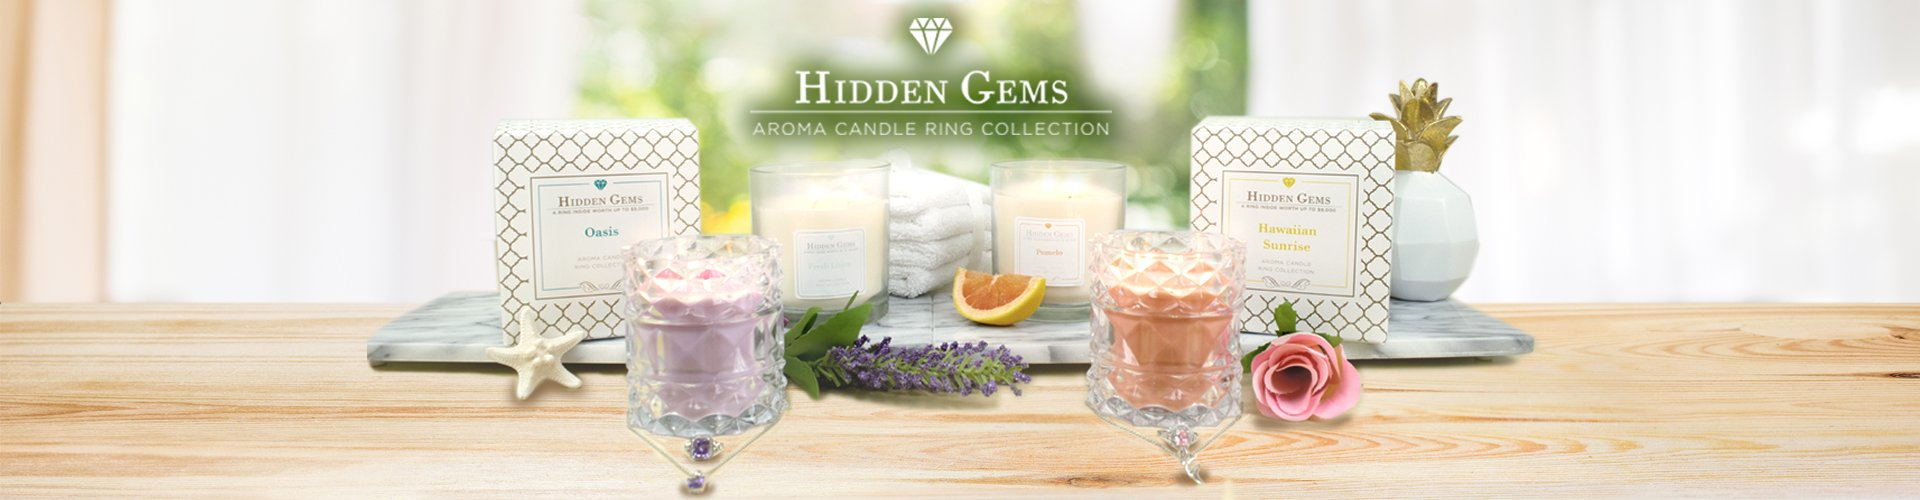 Hidden Gems Ring Candles